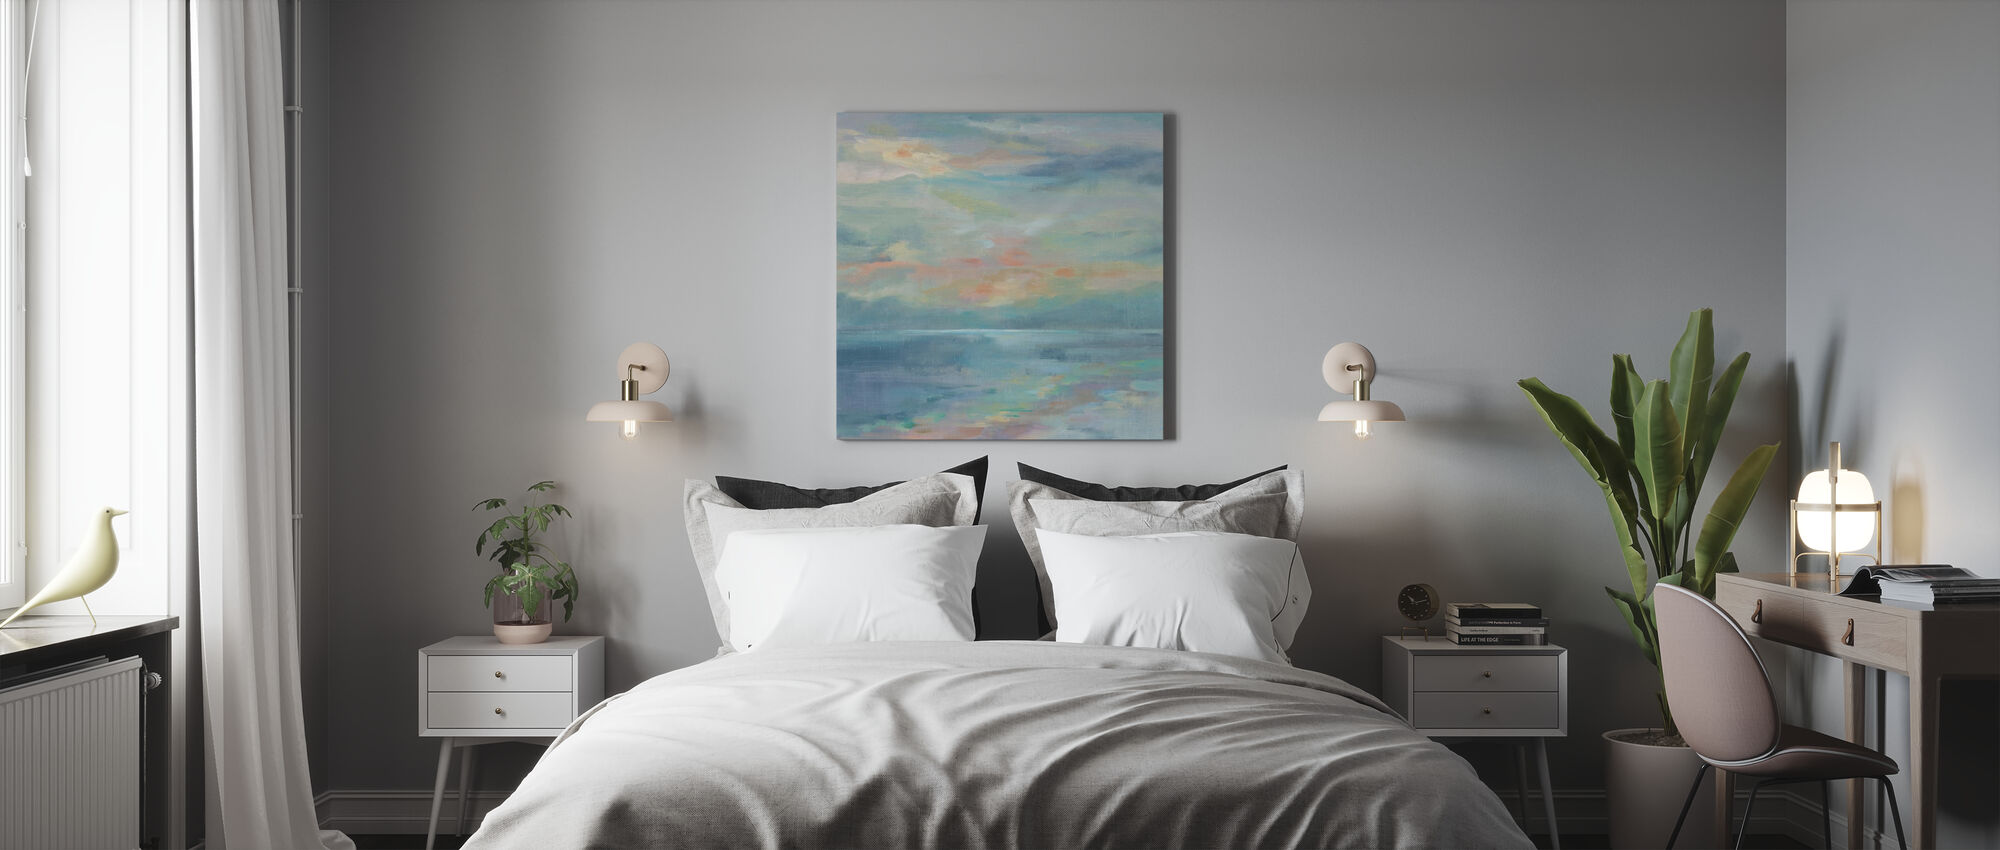 June Morning by the Sea - Canvas print - Bedroom